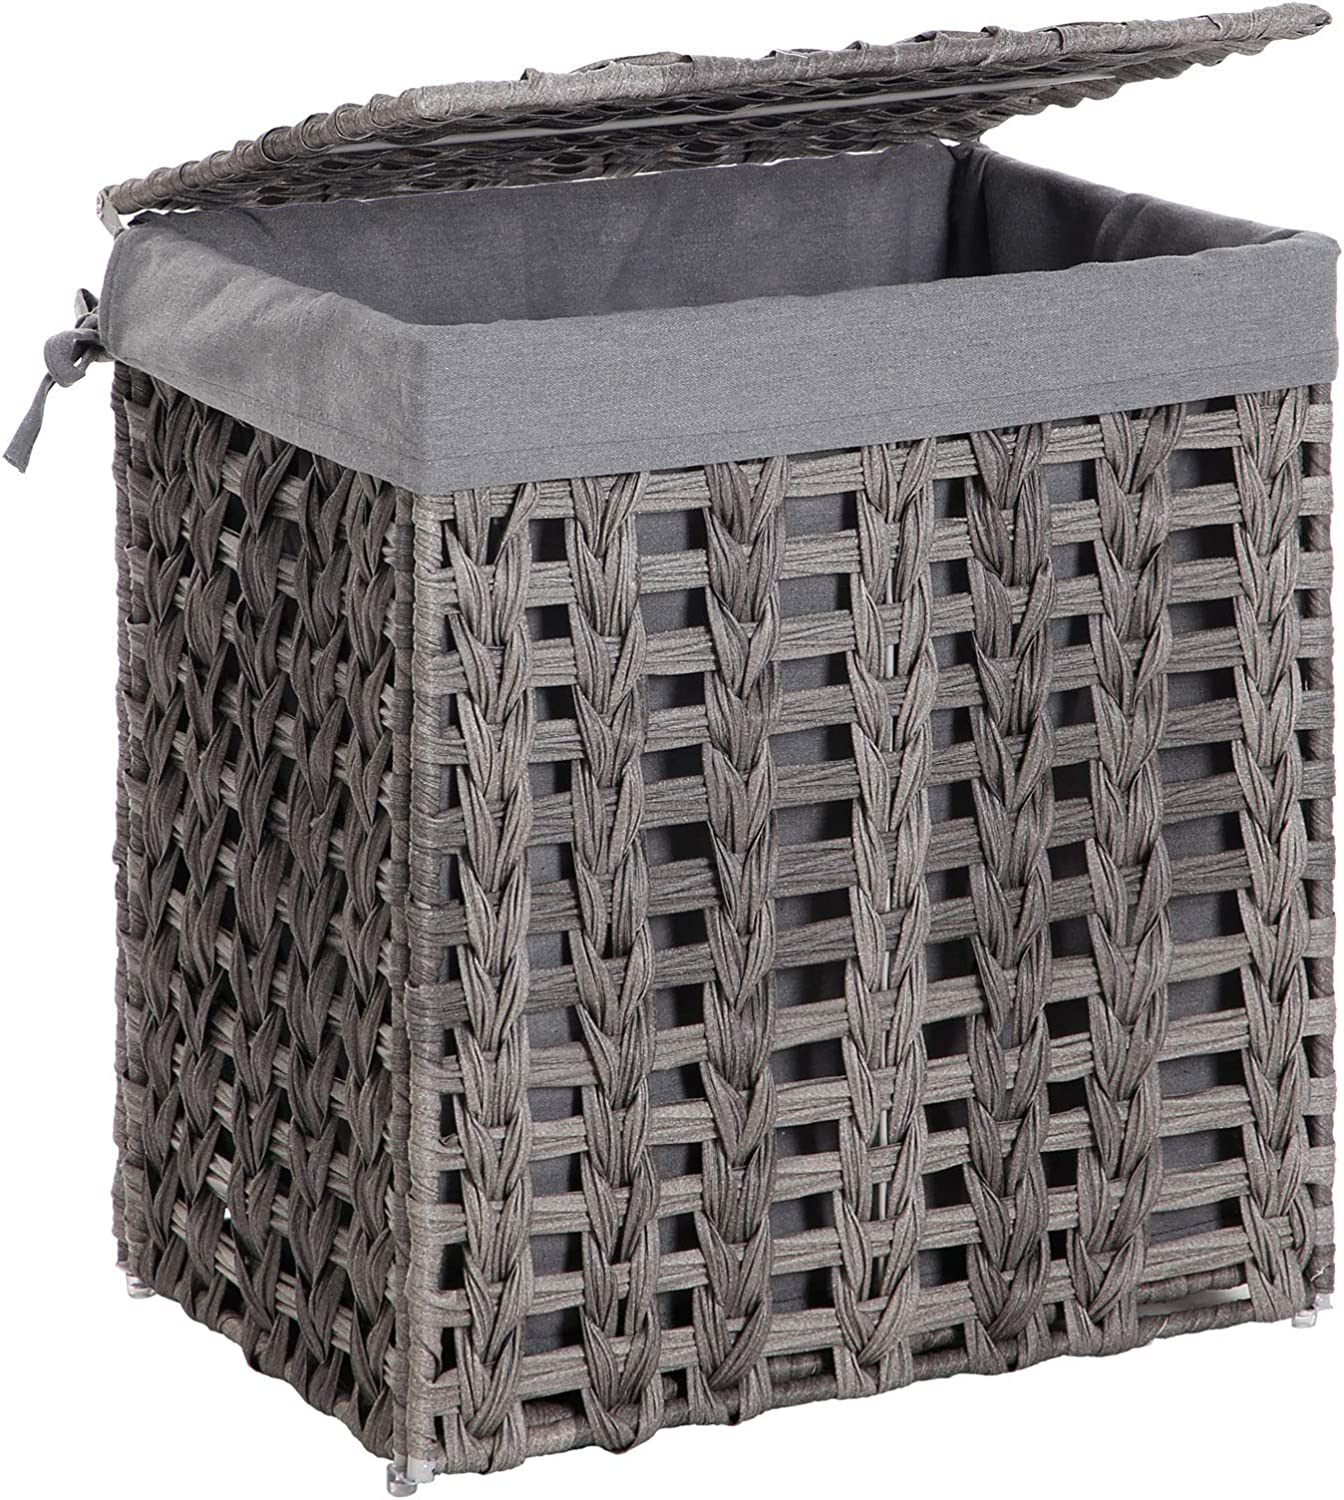 SONGMICS Handwoven Laundry Hamper, Rattan-Style Laundry Basket with Removable Liner Bag, Lid, Metal Frame, 17.9 x 12.6 x 20.3 Inches, for Living Room, Bathroom, Gray ULCB50GW